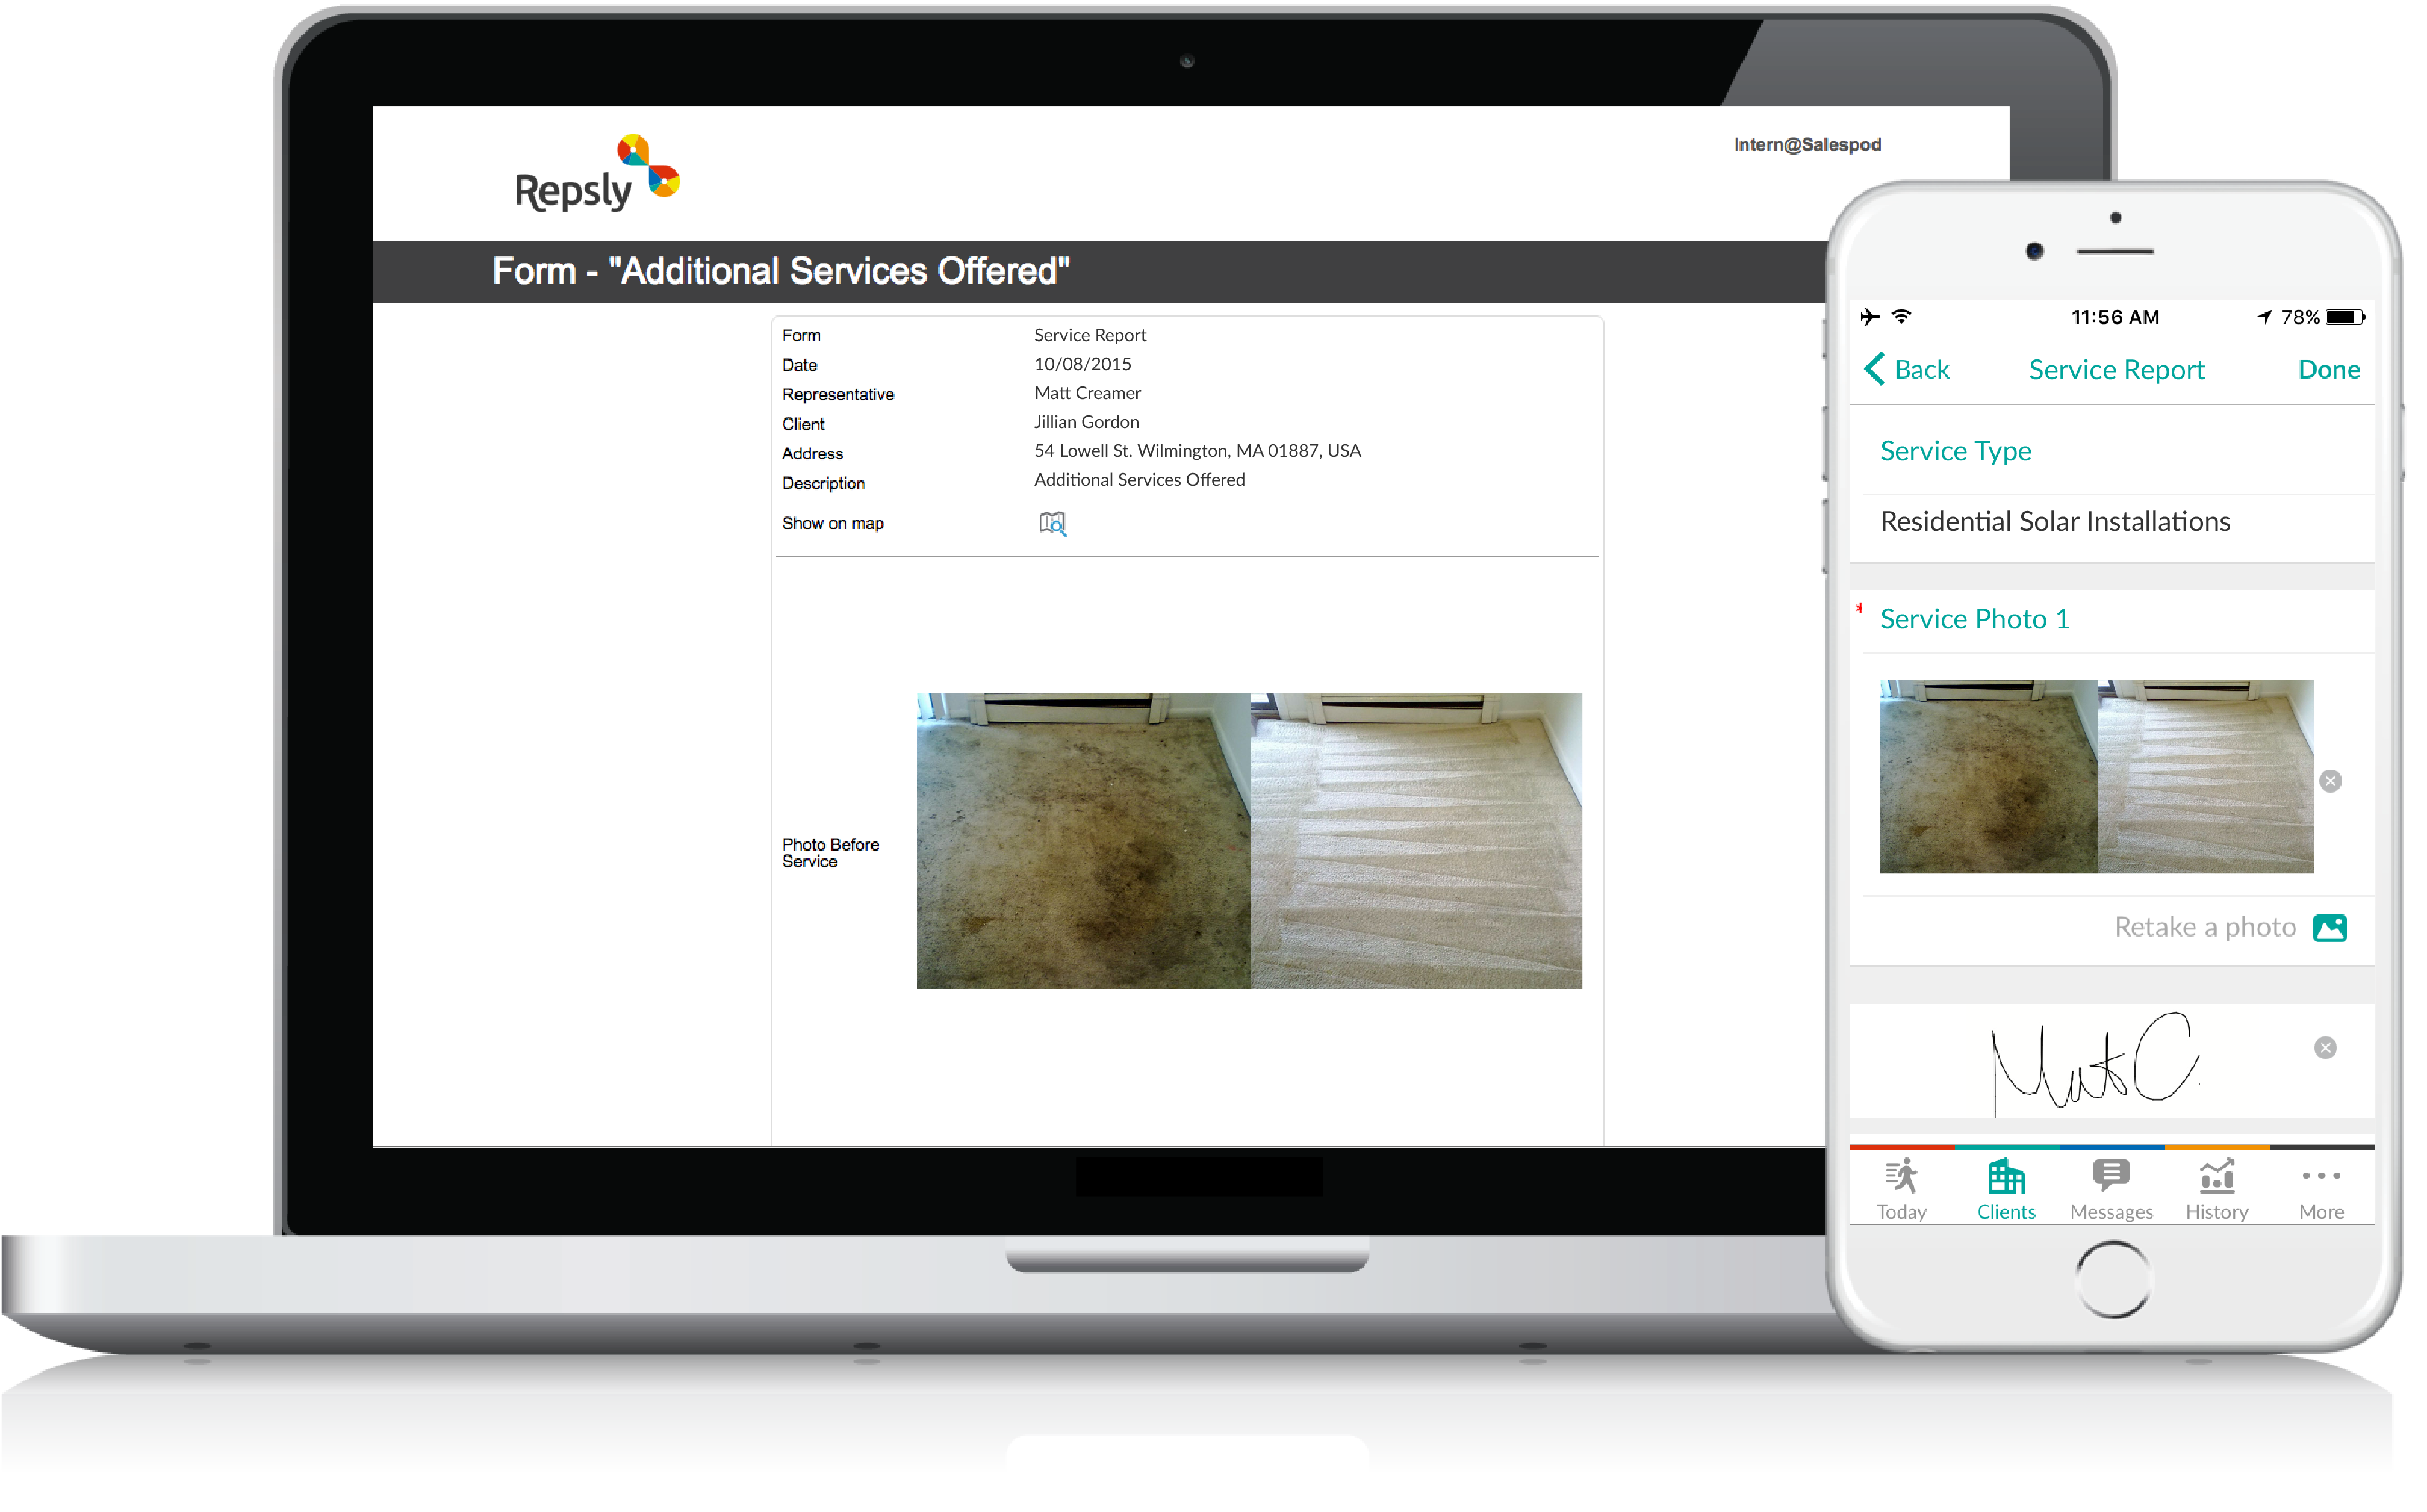 Carpet Cleaning Scheduling Software Mobile forms